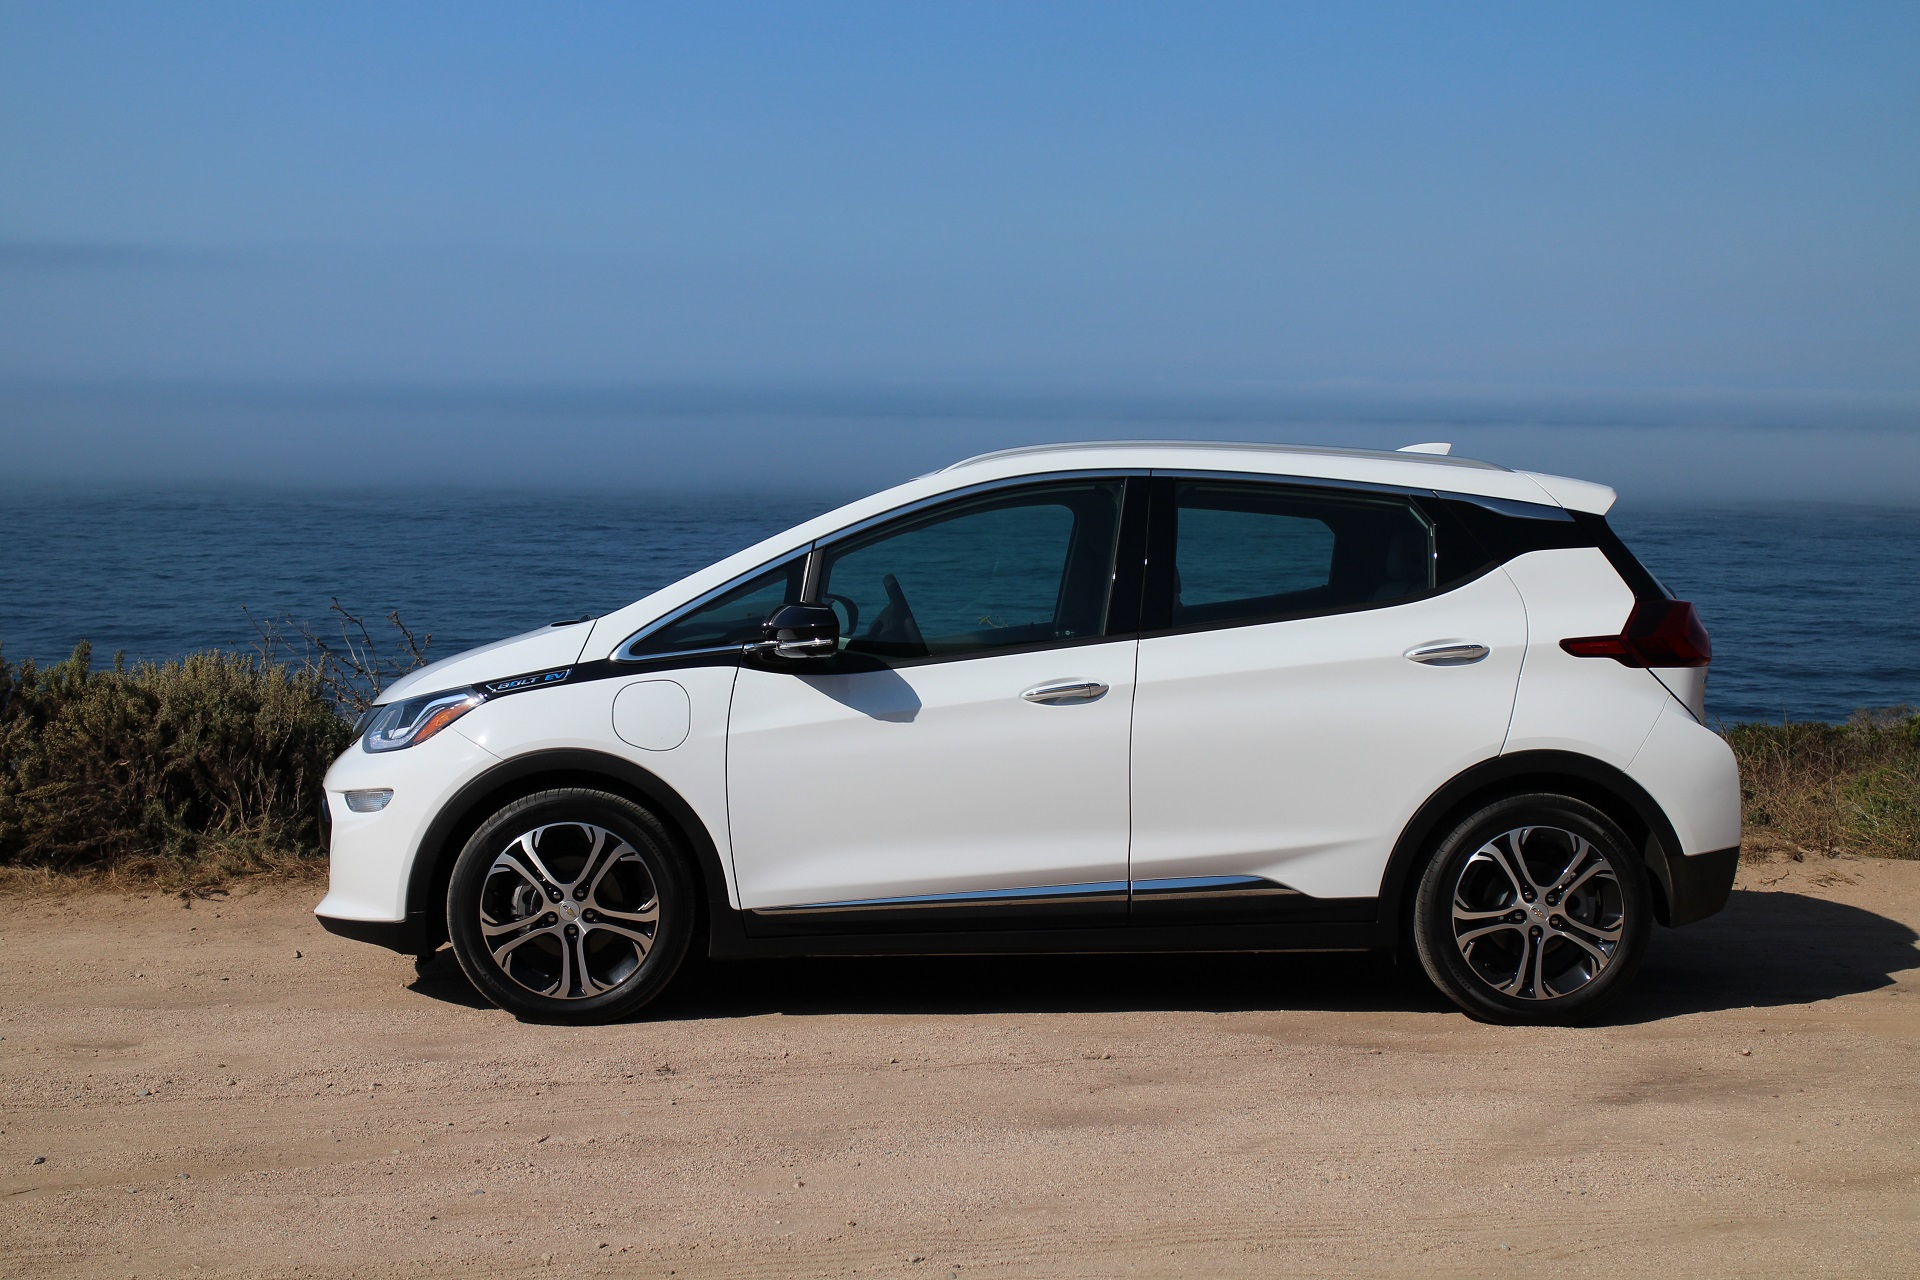 2016 Chevrolet Volt Will Offer 53 Miles Of Electric Range Ignition Gm Ballast Resistor Wiring Diagram Chevy Bolt Ev Car Shows Can Do Silicon Valley